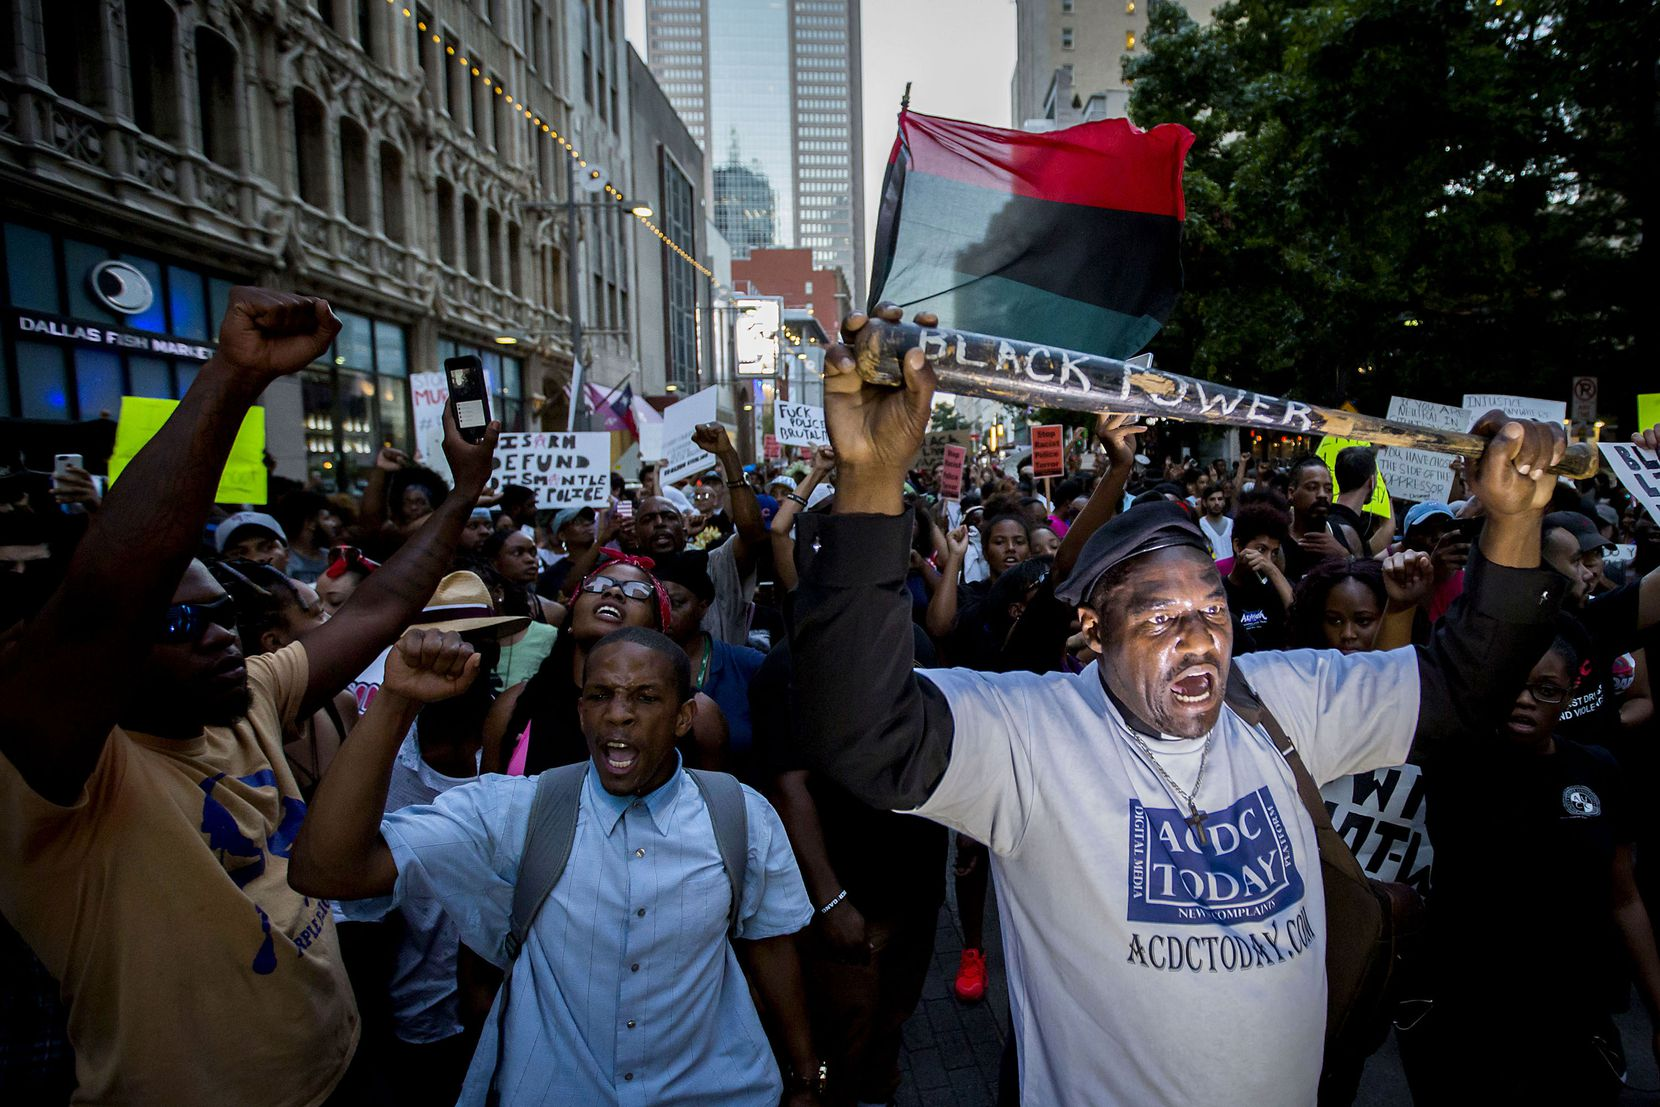 Ernest Walker led other protesters at Thursday night's rally in downtown Dallas, which was organized after the killings of Alton Sterling by police officers in Baton Rouge, La., and Philando Castile in Minnesota..